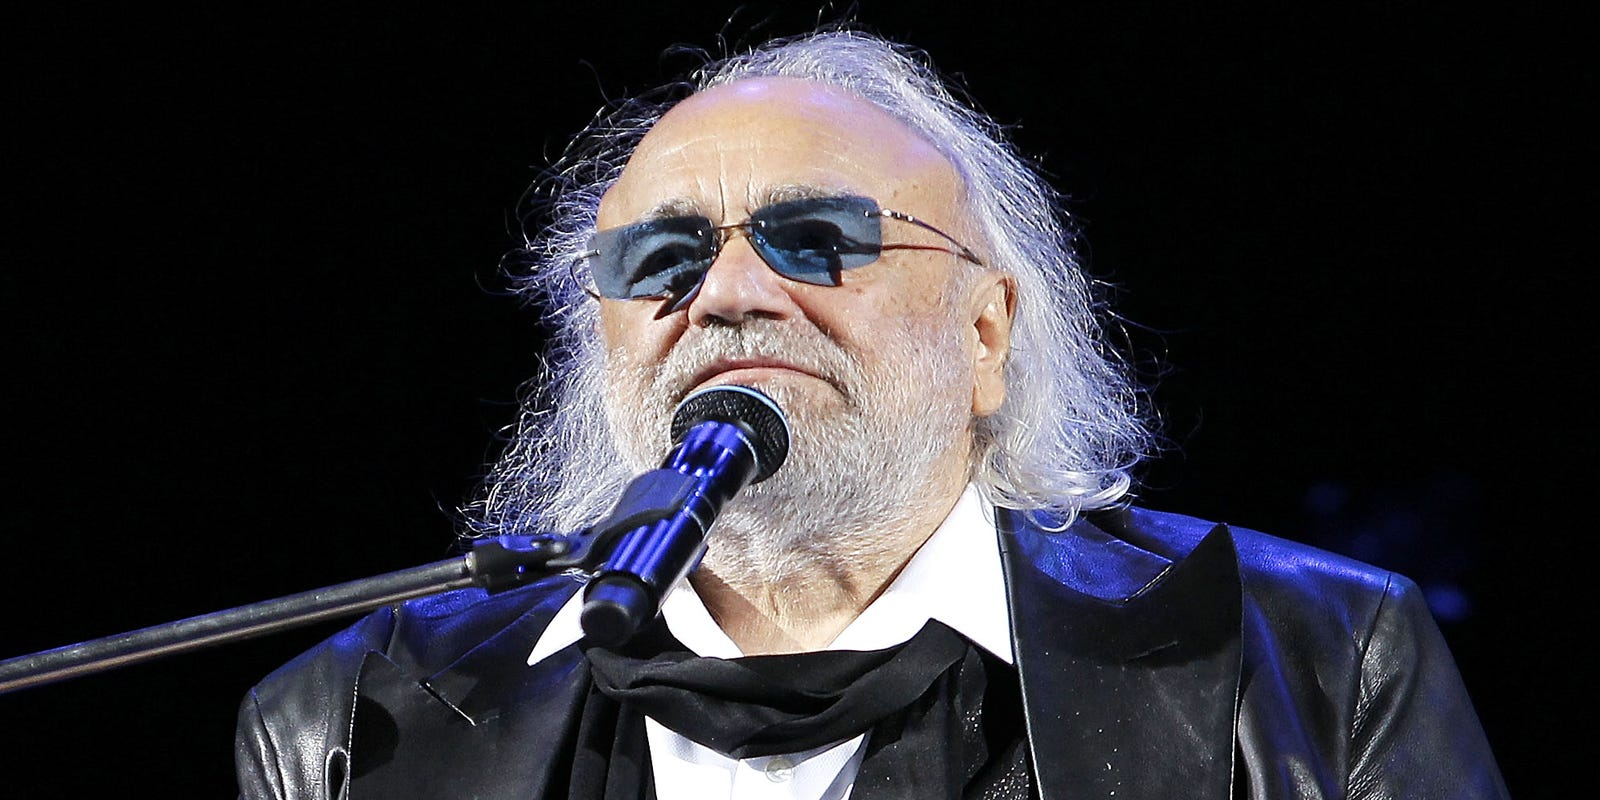 Renowned Greek Singer Demis Roussos Dies At 68 Radio Wave Diagram Http Hollywoodbollywood Co In Hoadmin